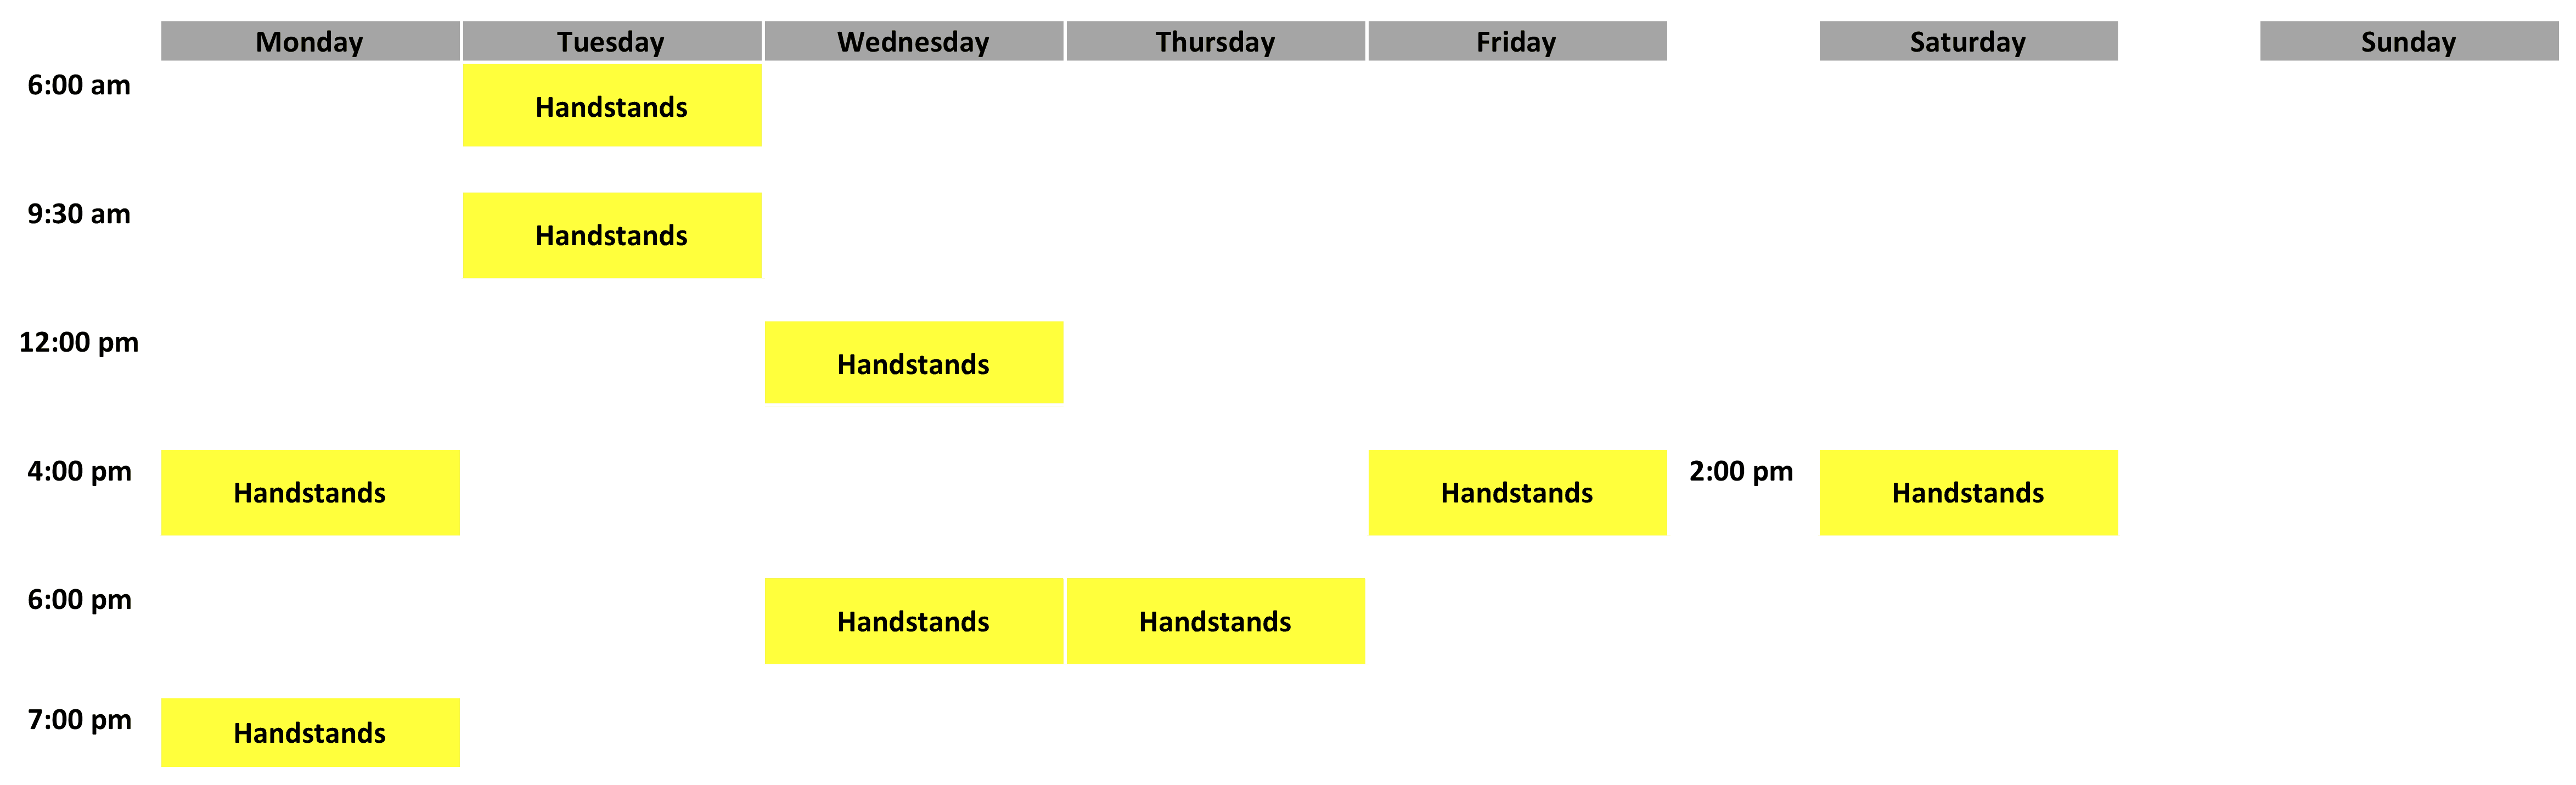 Handstands Schedule - April 2019